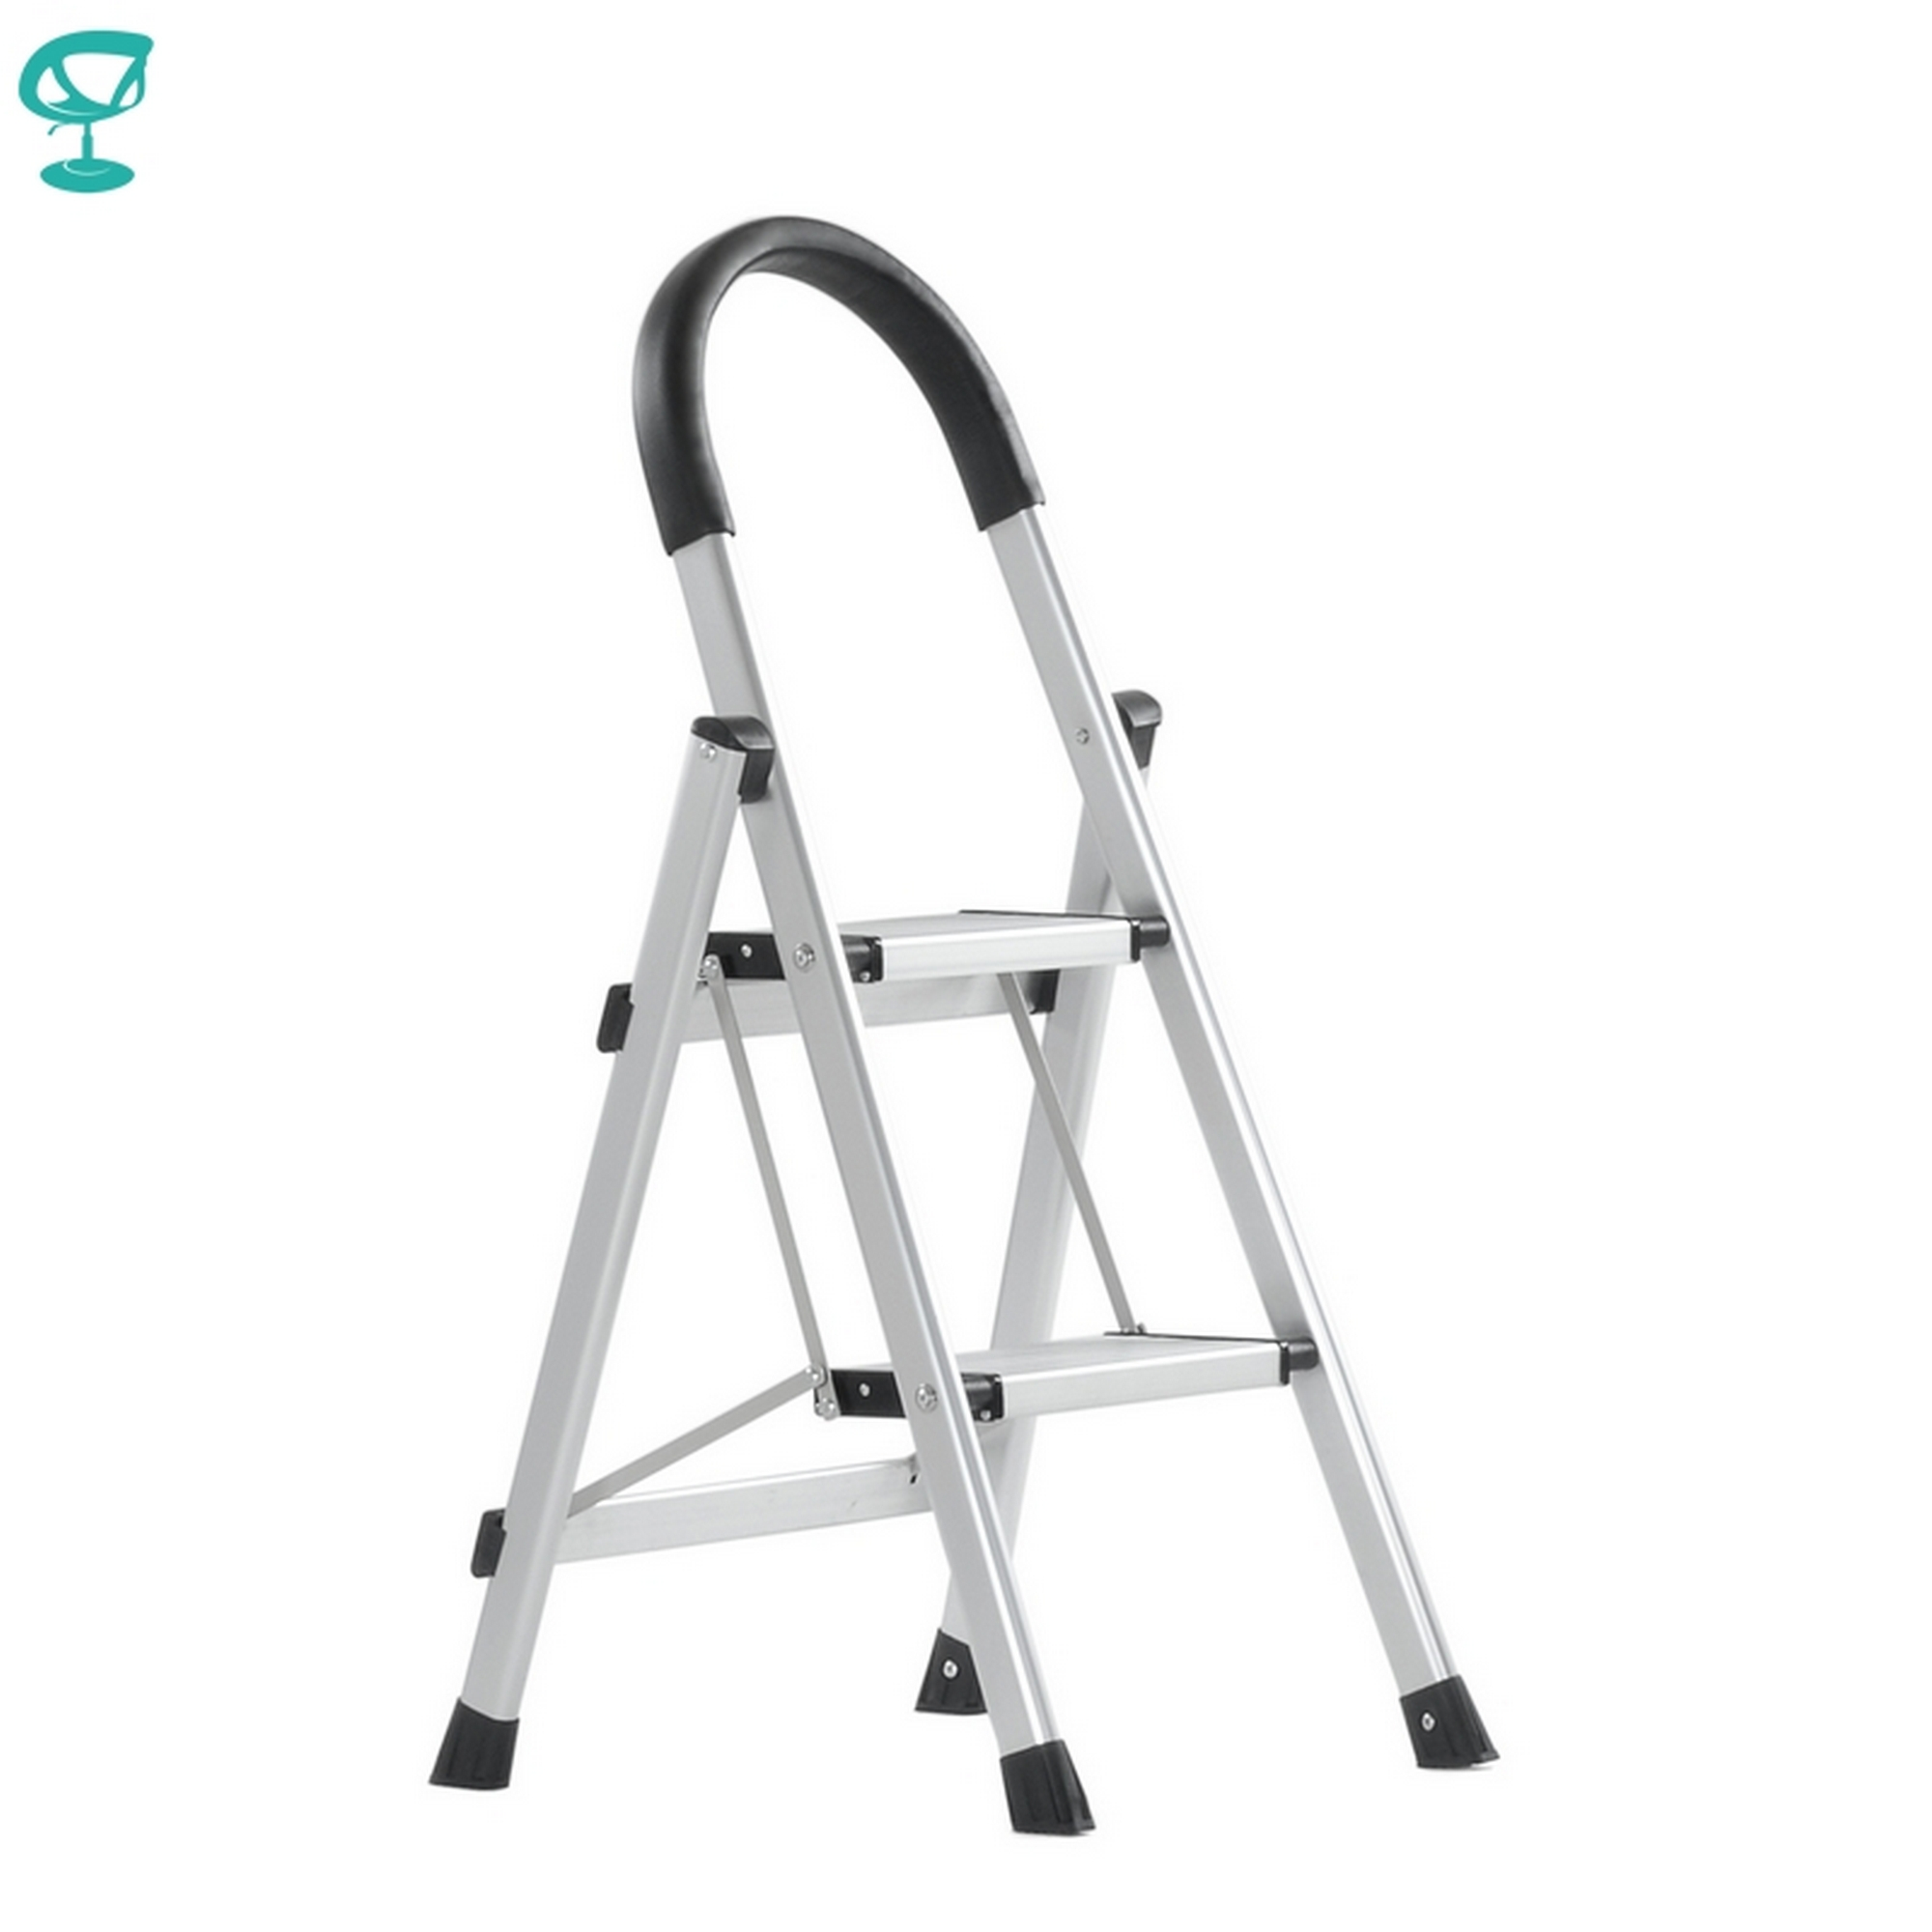 95673 Barneo St-22 Ladder Aluminum 2 Stage Single Side Max Load 150 Kg Free Shipping To Russia